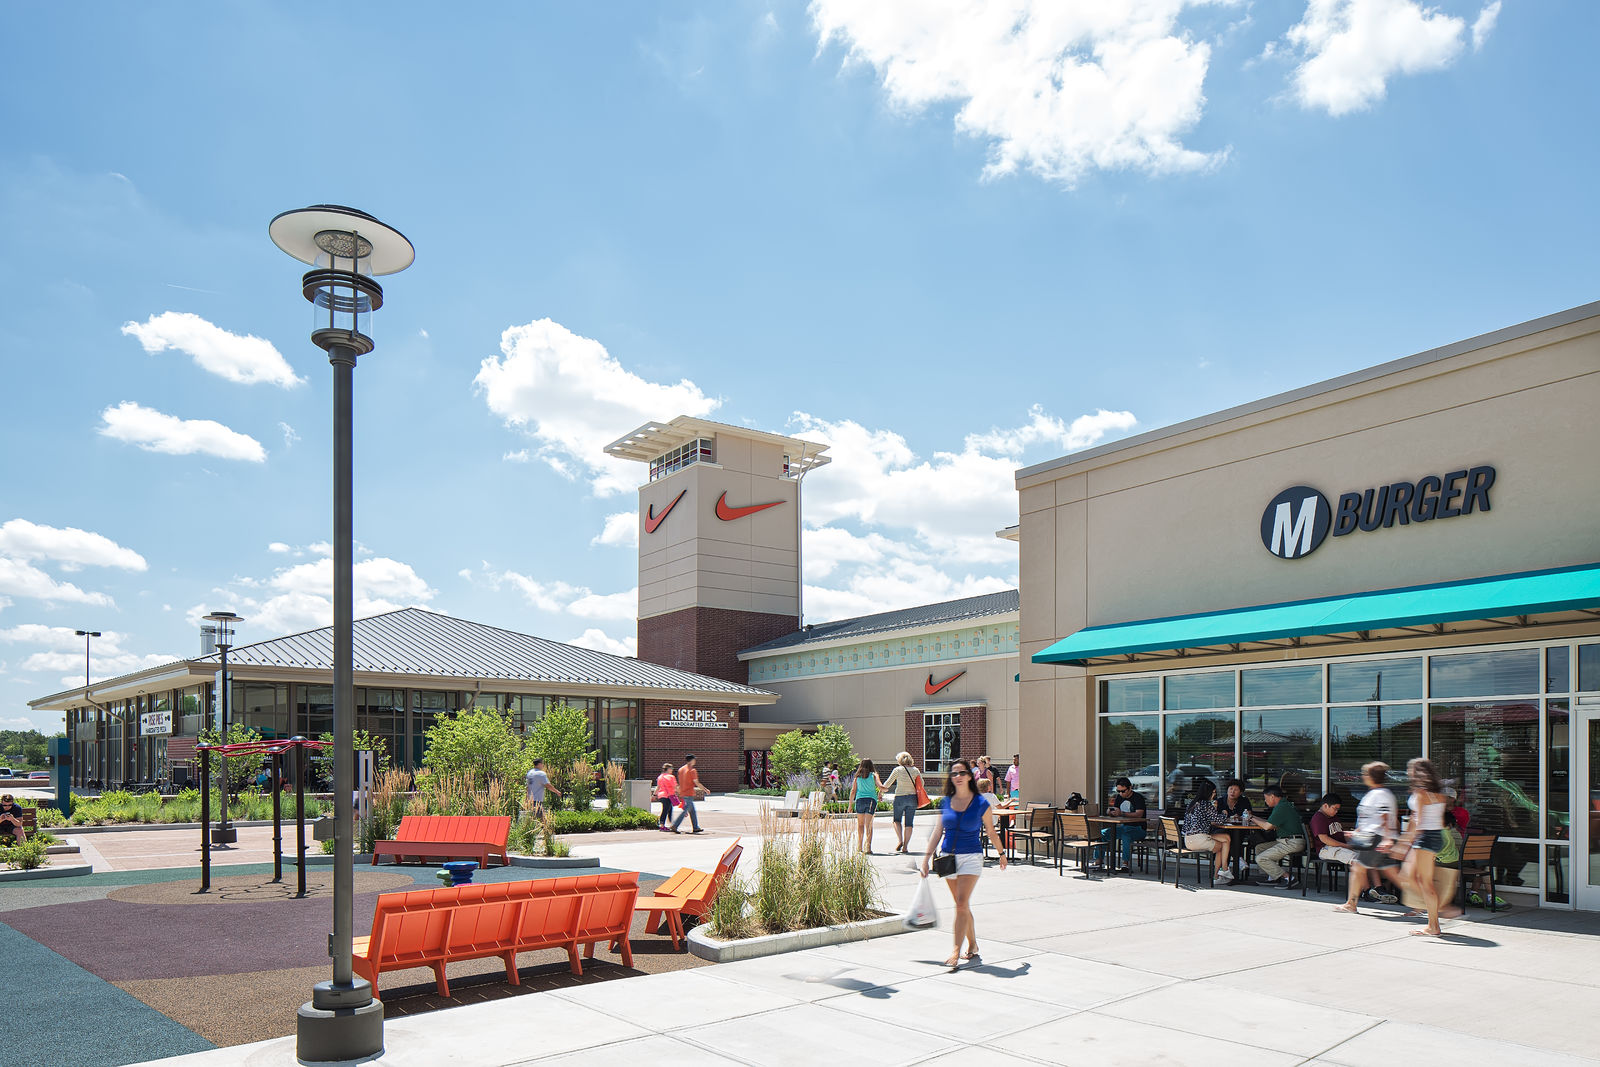 Chicago Premium Outlets, Aurora. 25K likes. Chicago Premium Outlets® offers designer and name brand stores including tentrosegaper.ga, Armani Outlet and more/5(K).